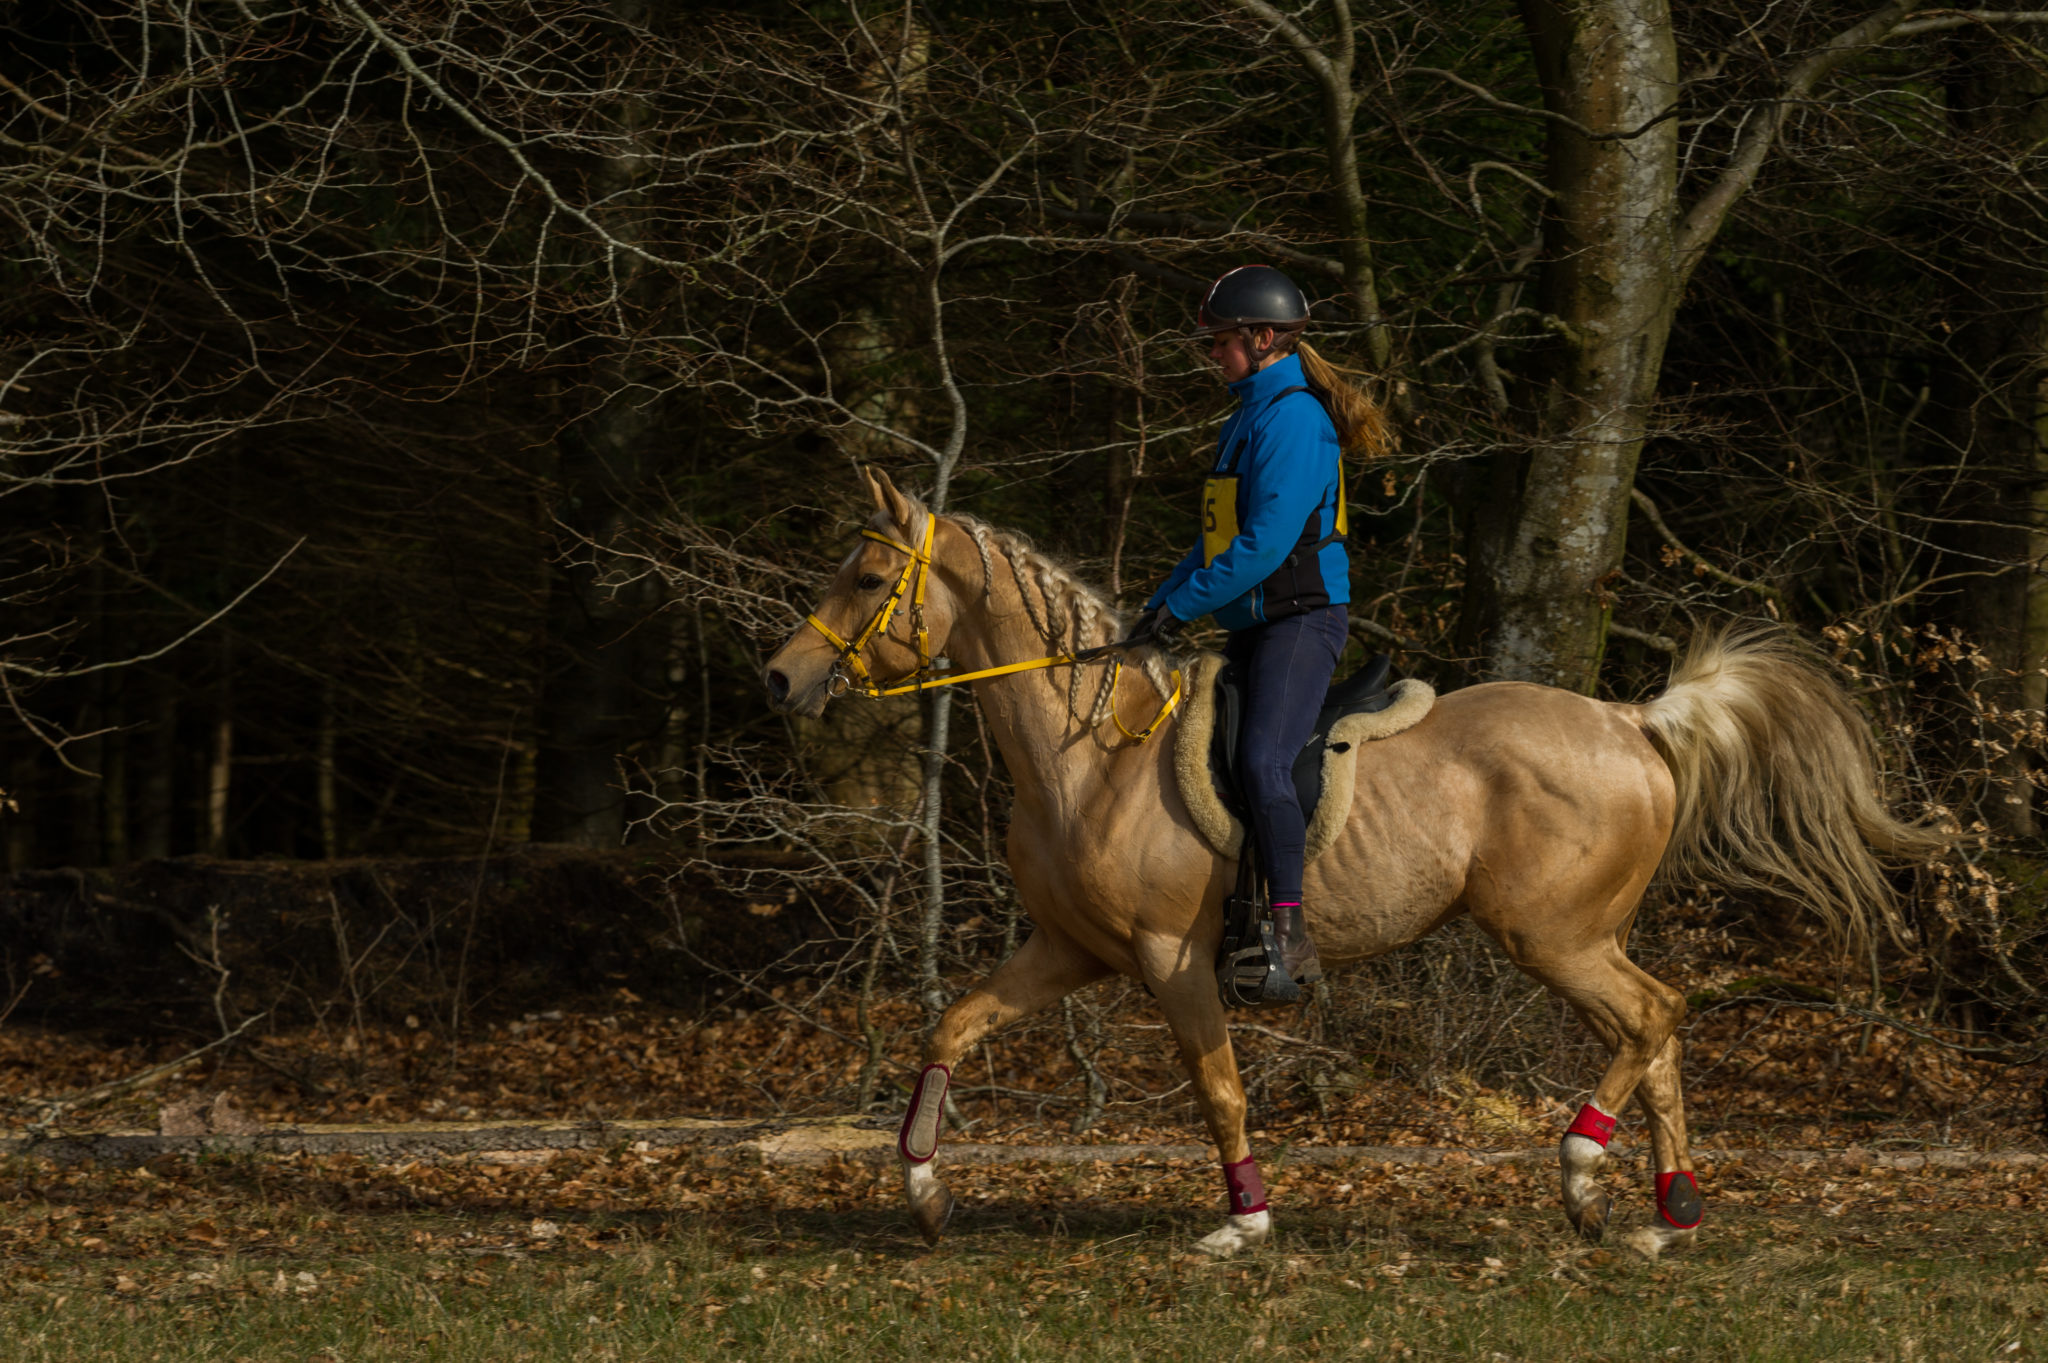 Endurance World FEI Endurance Forum 2017. Rdiing in the forest.